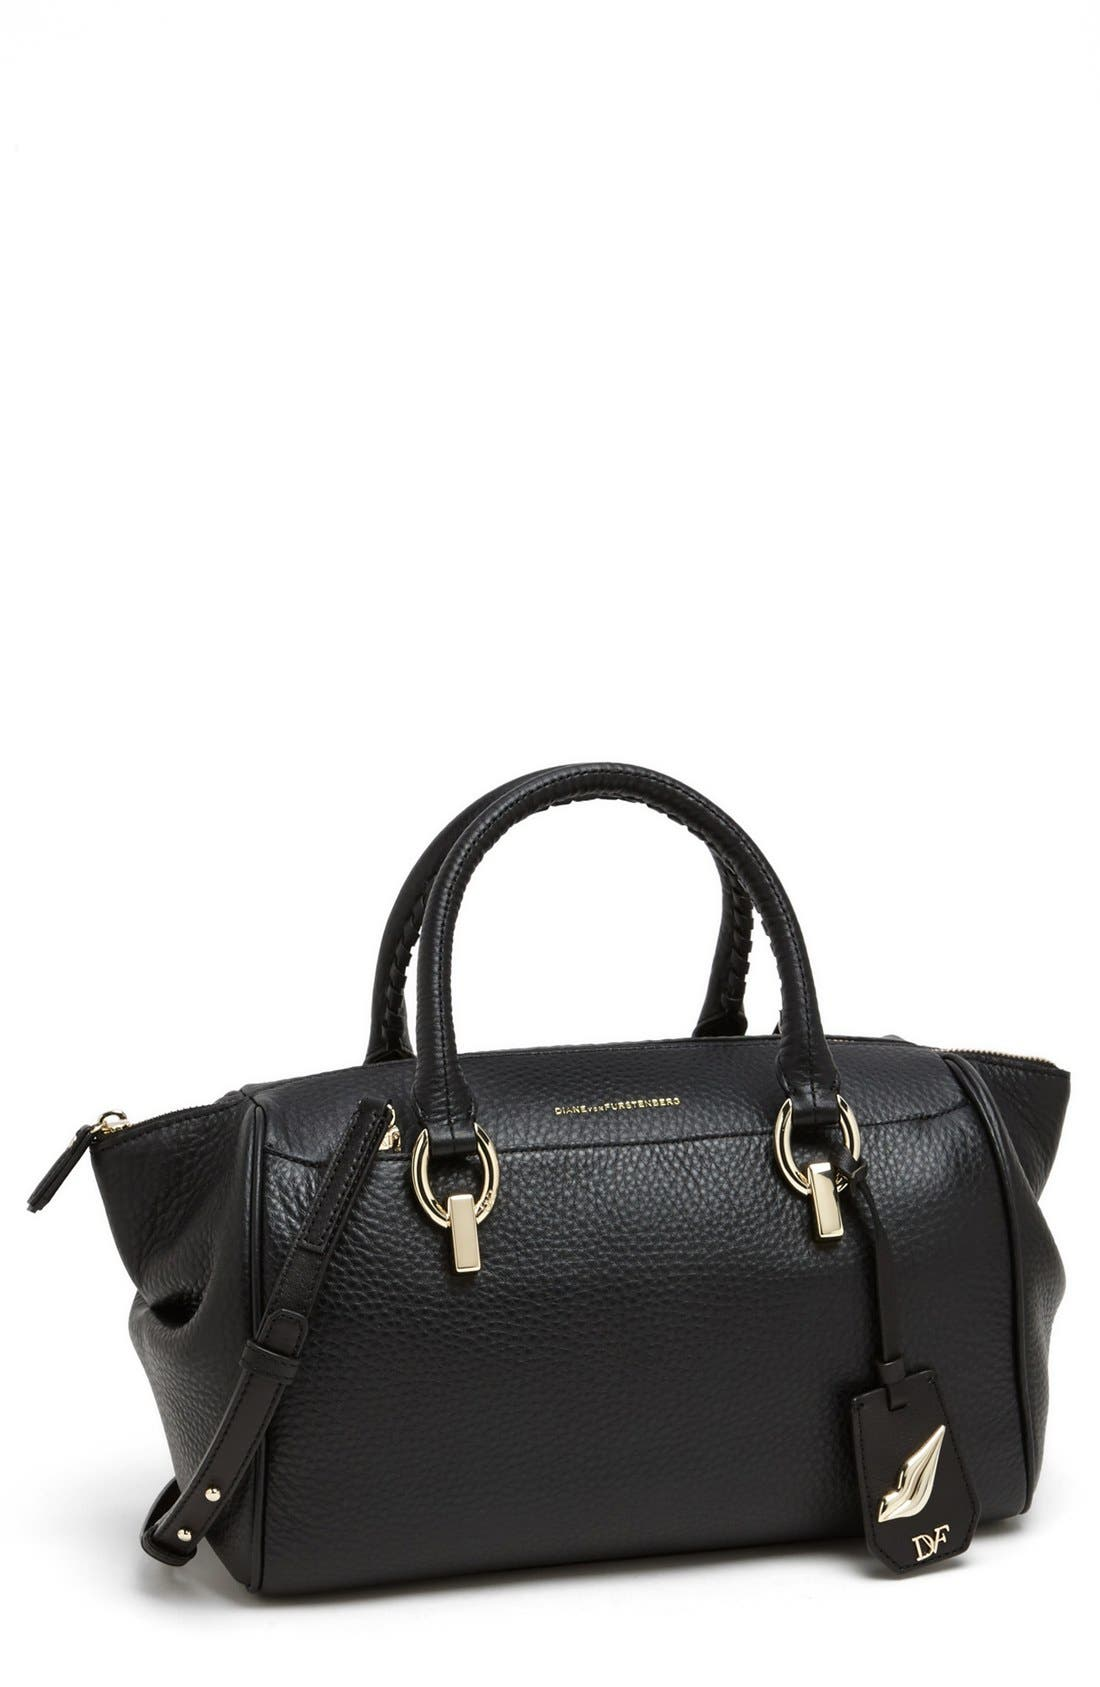 Alternate Image 1 Selected - Diane von Furstenberg 'Small Sutra' Leather Satchel